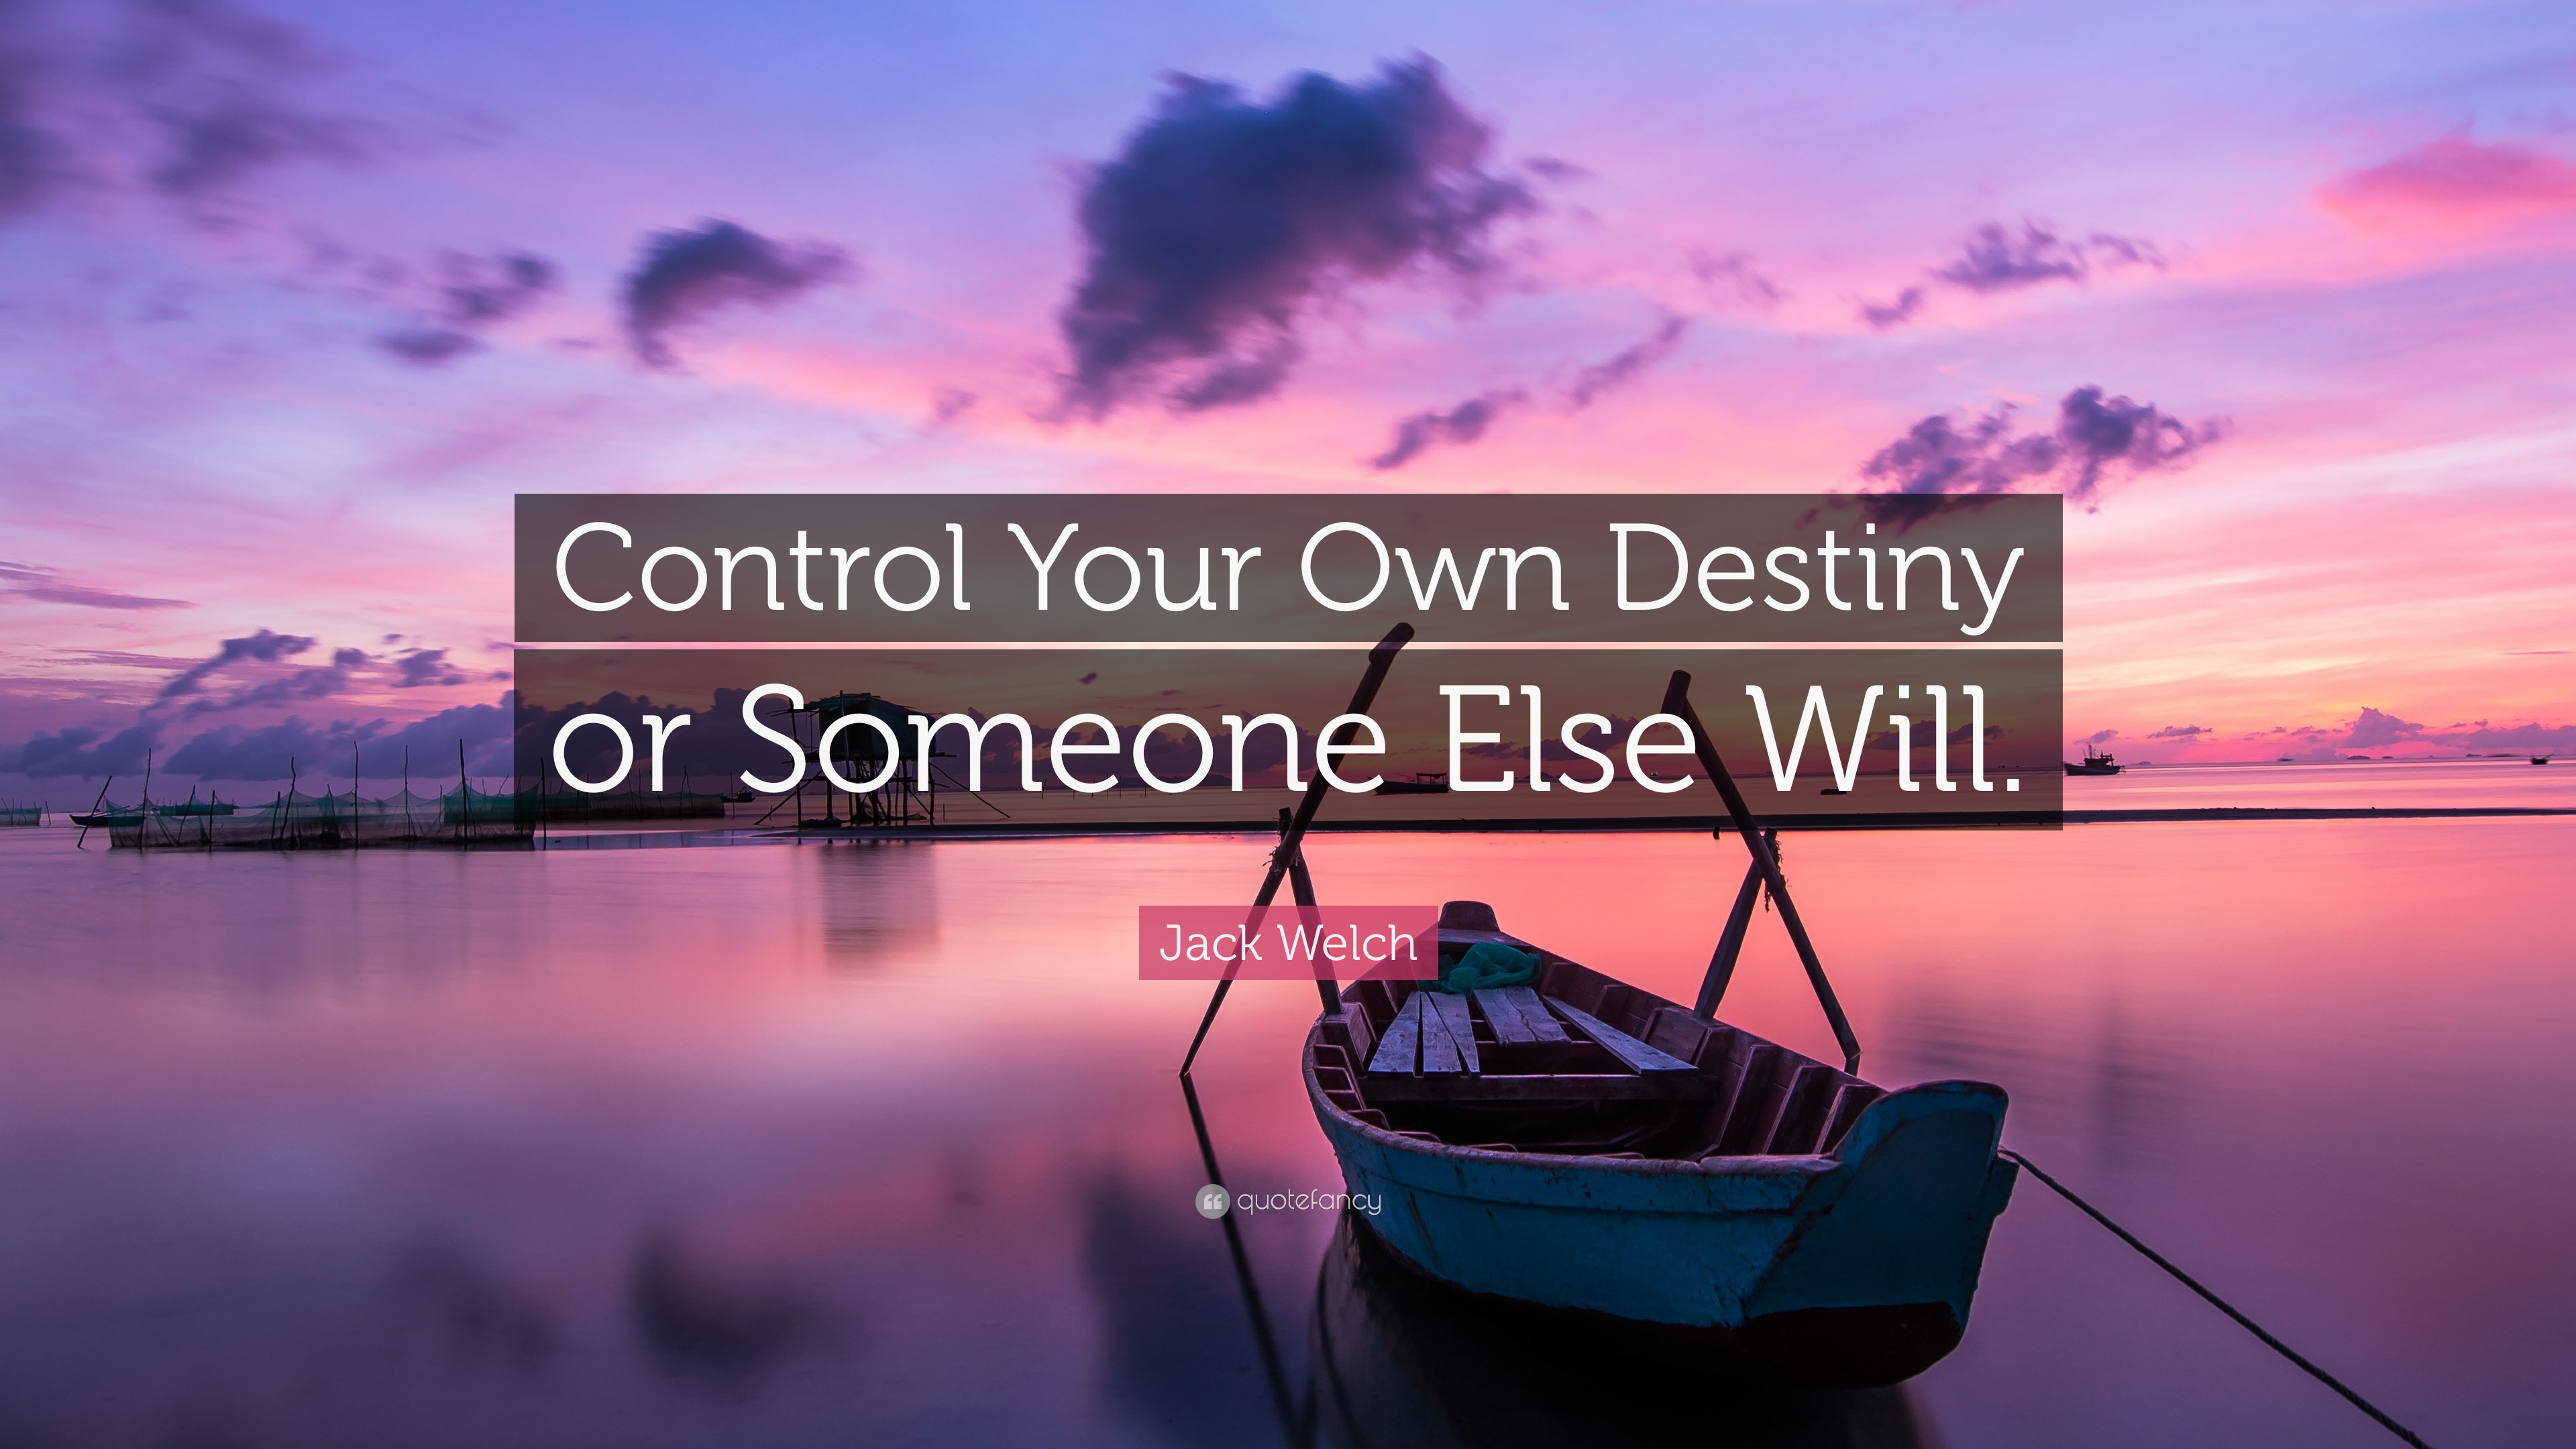 Jack Welch Quote Control Your Own Destiny Or Someone Else Will